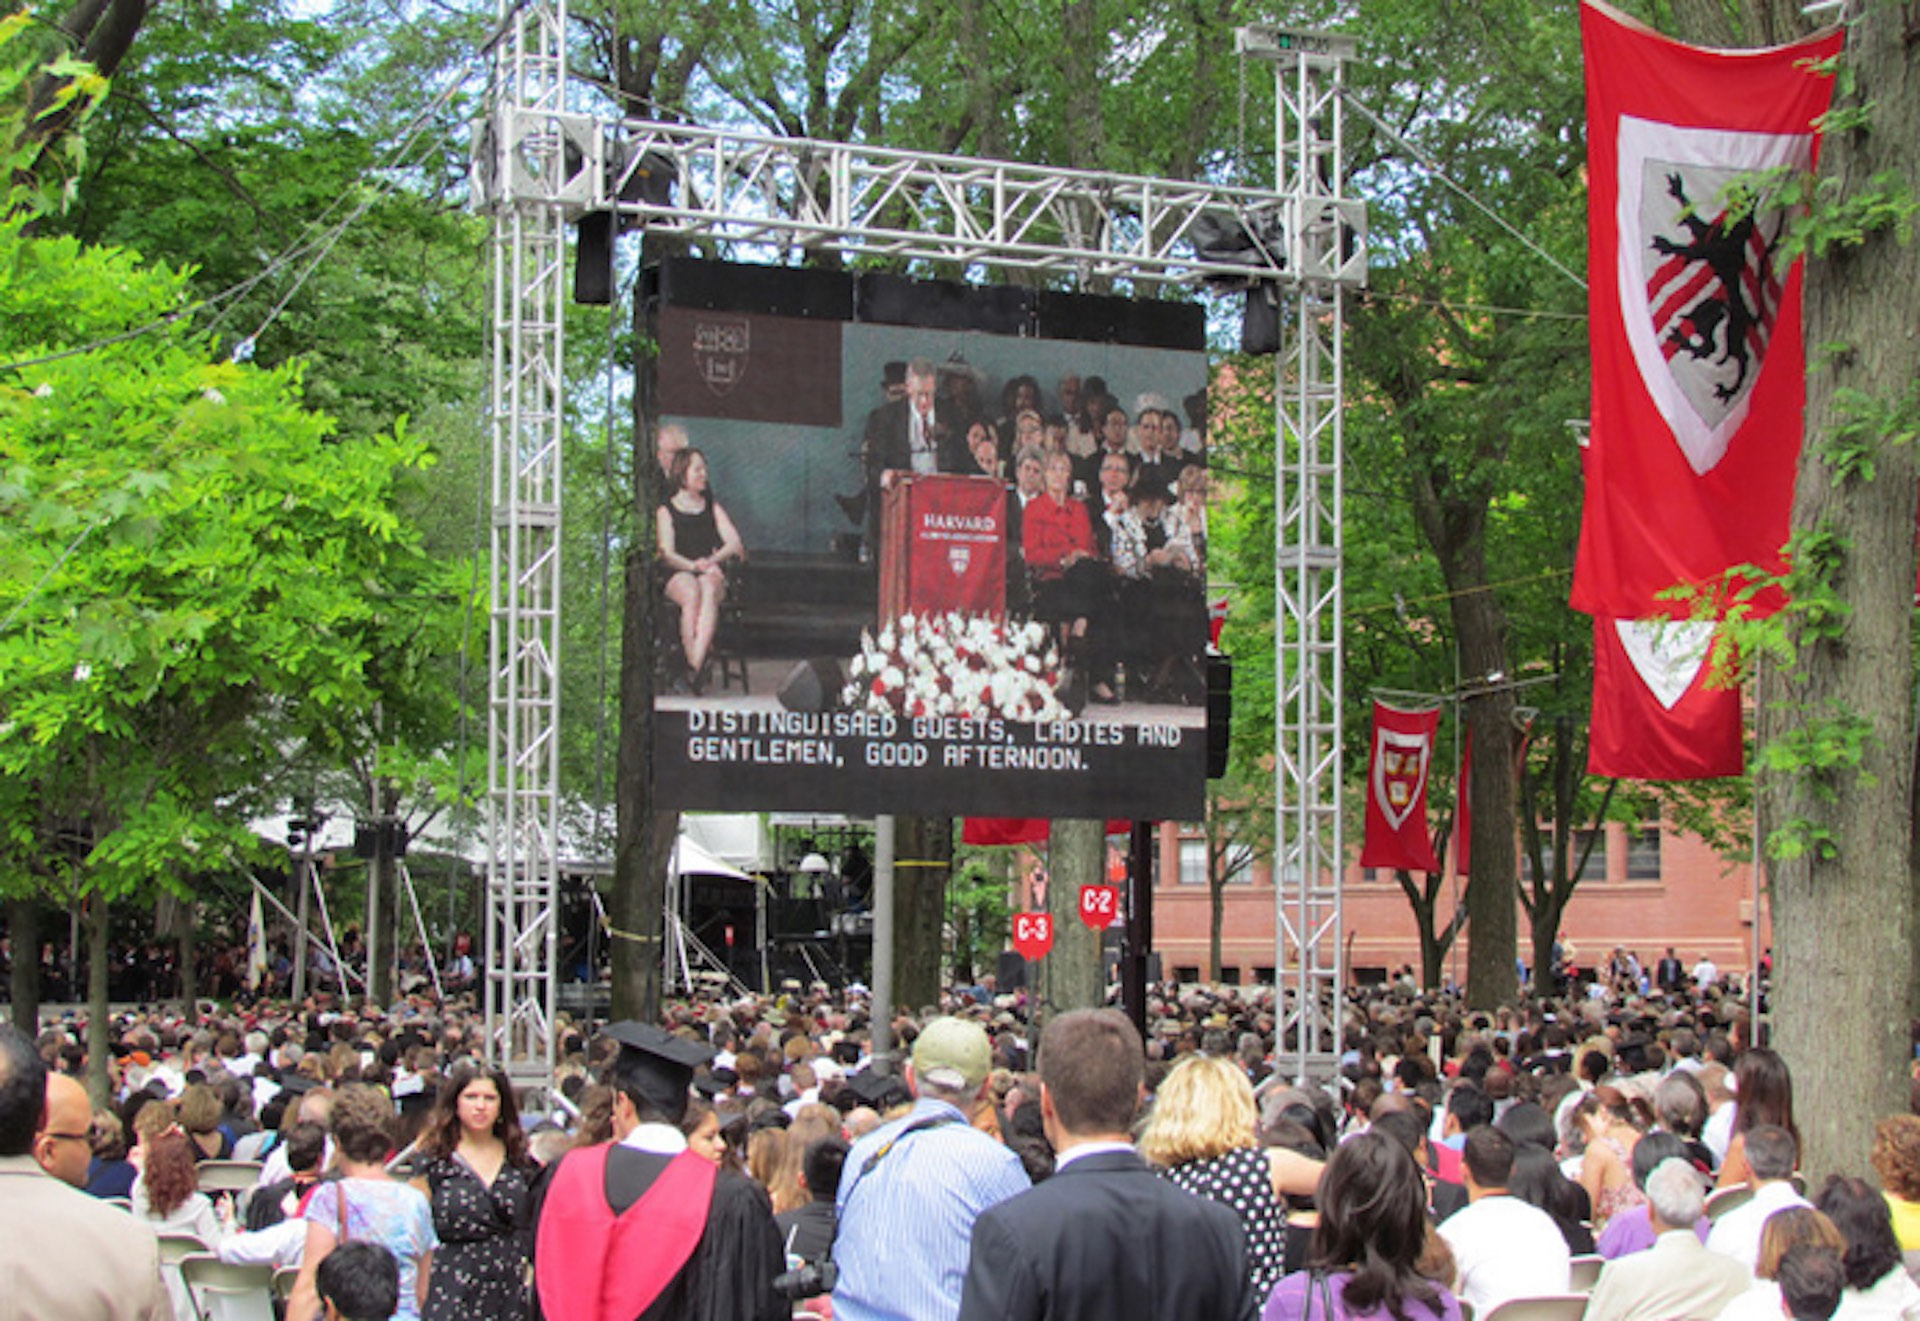 LED Screen Rental for Commencement Ceremonies